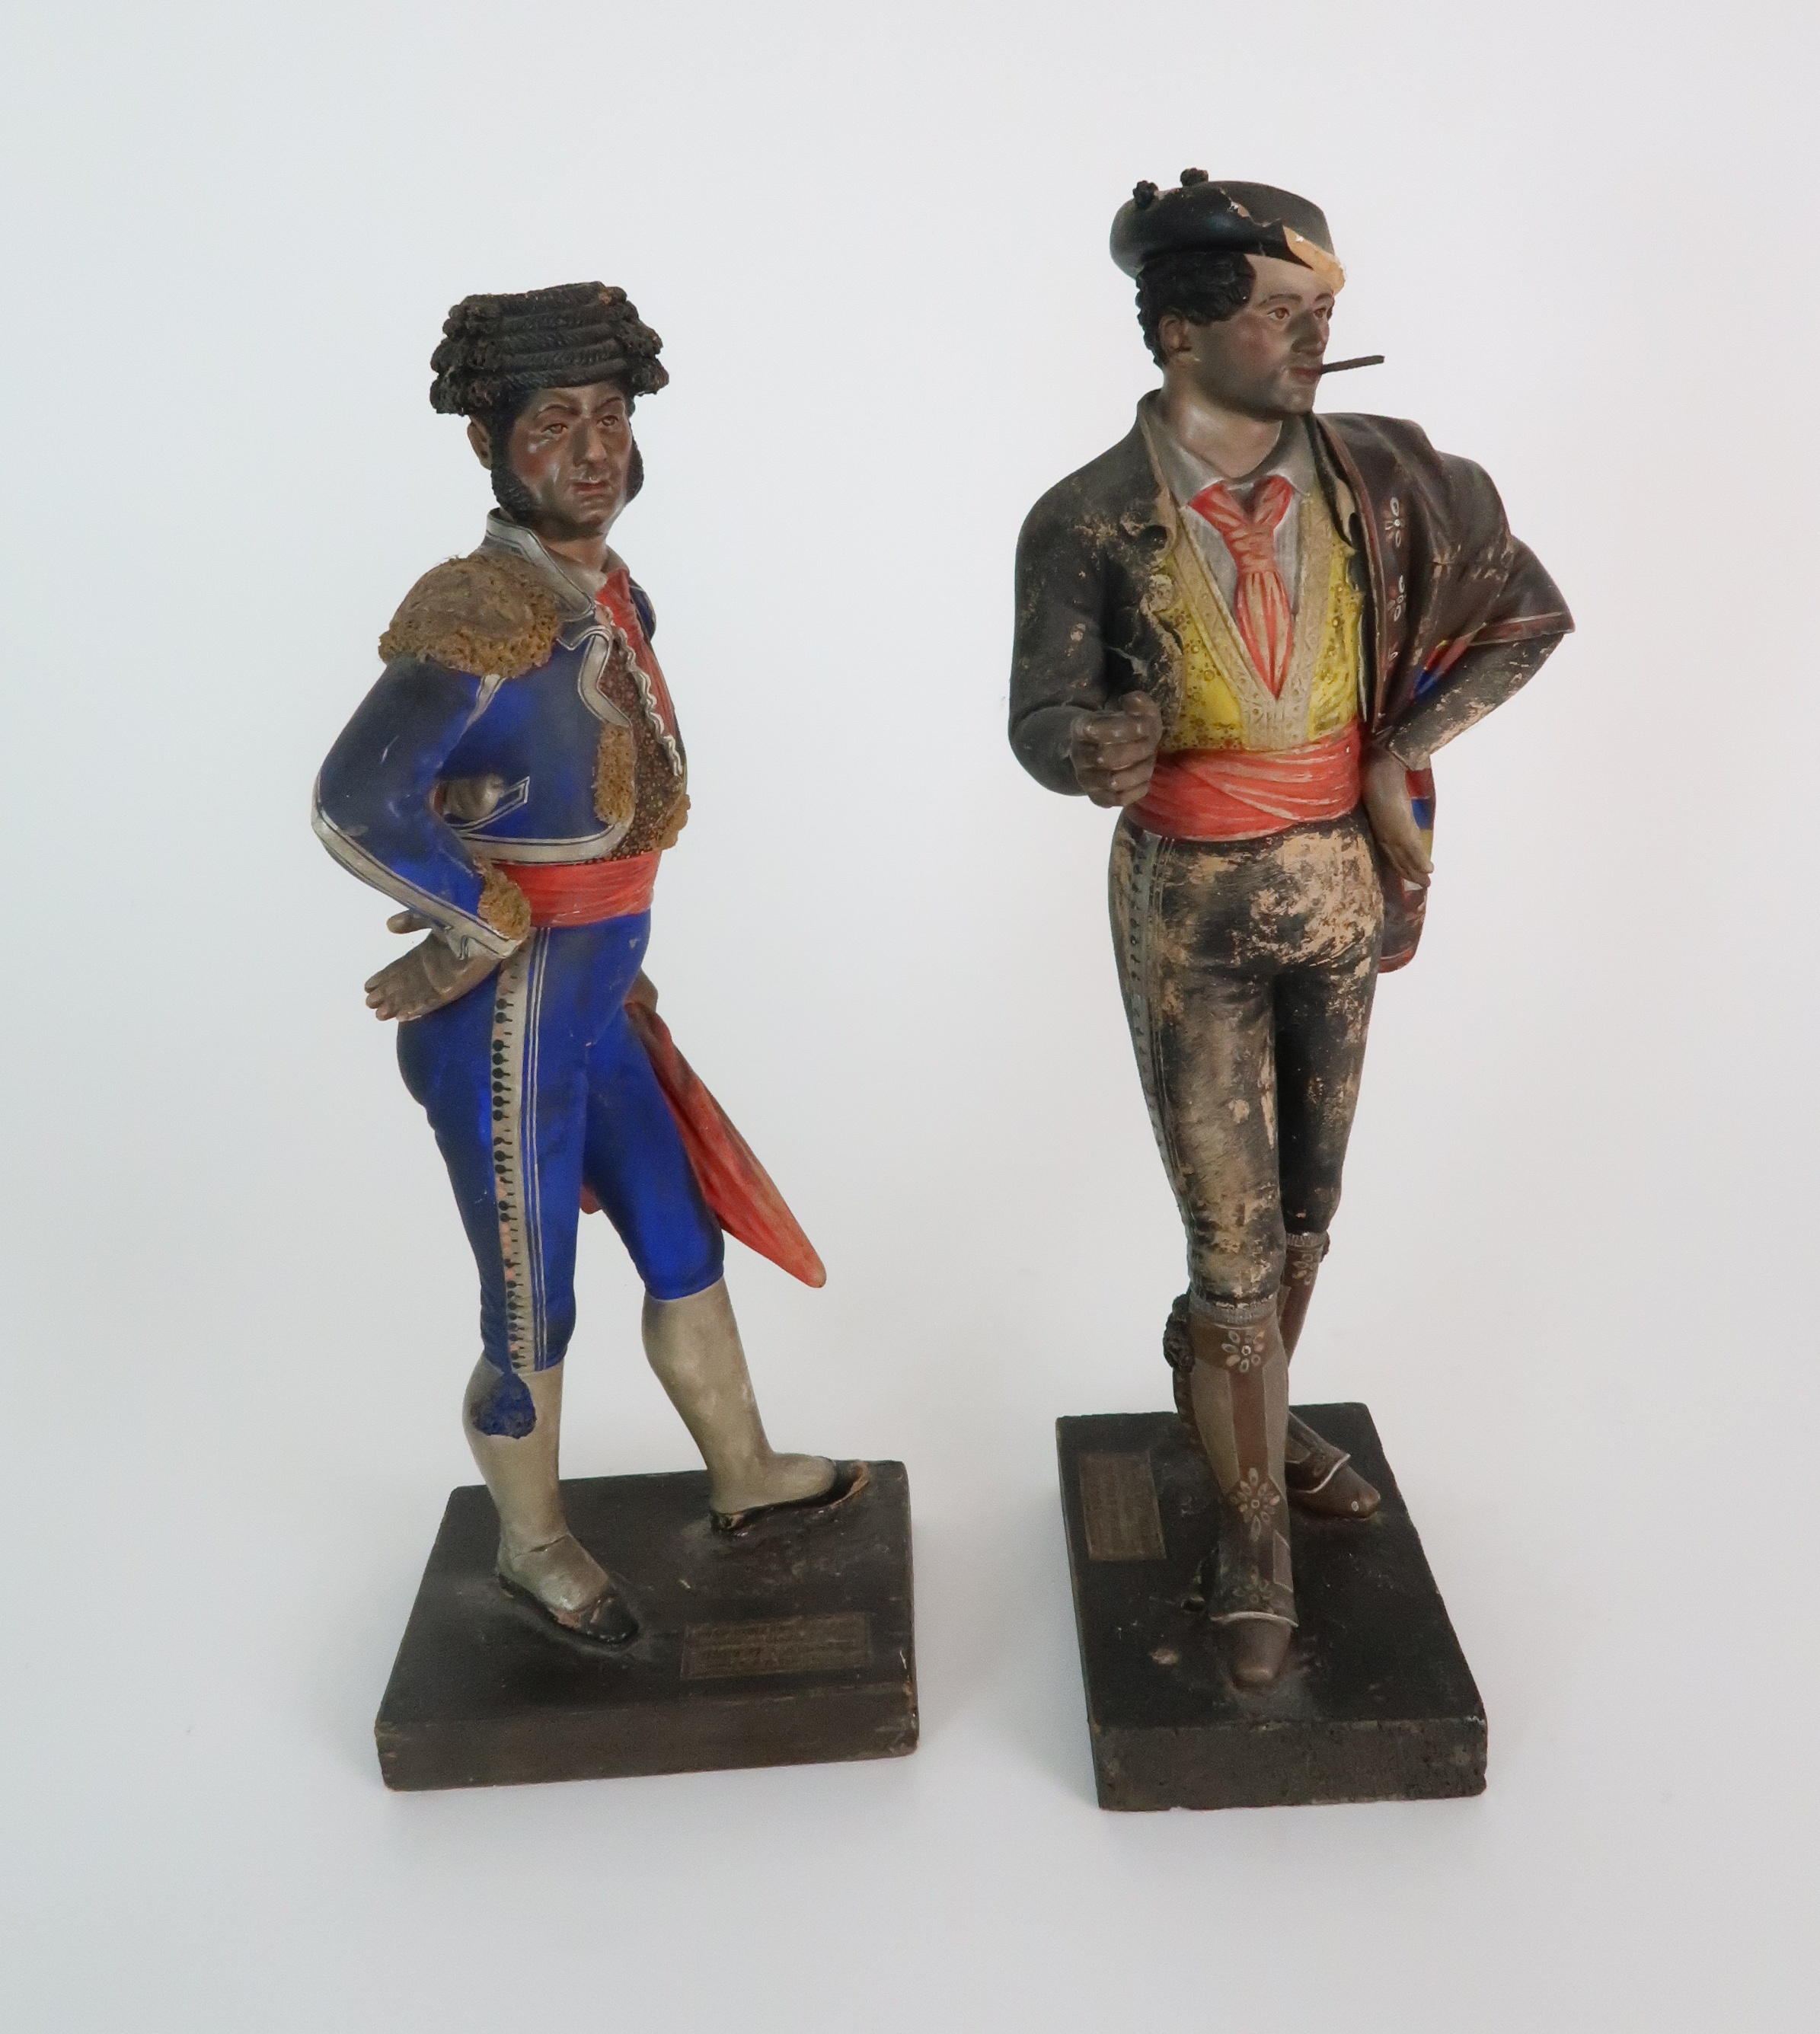 JOSE CUBERO, MALAGA - A PAIR OF MID 19TH CENTURY COLD PAINTED TERRACOTTA FIGURES one a matador, - Image 5 of 8